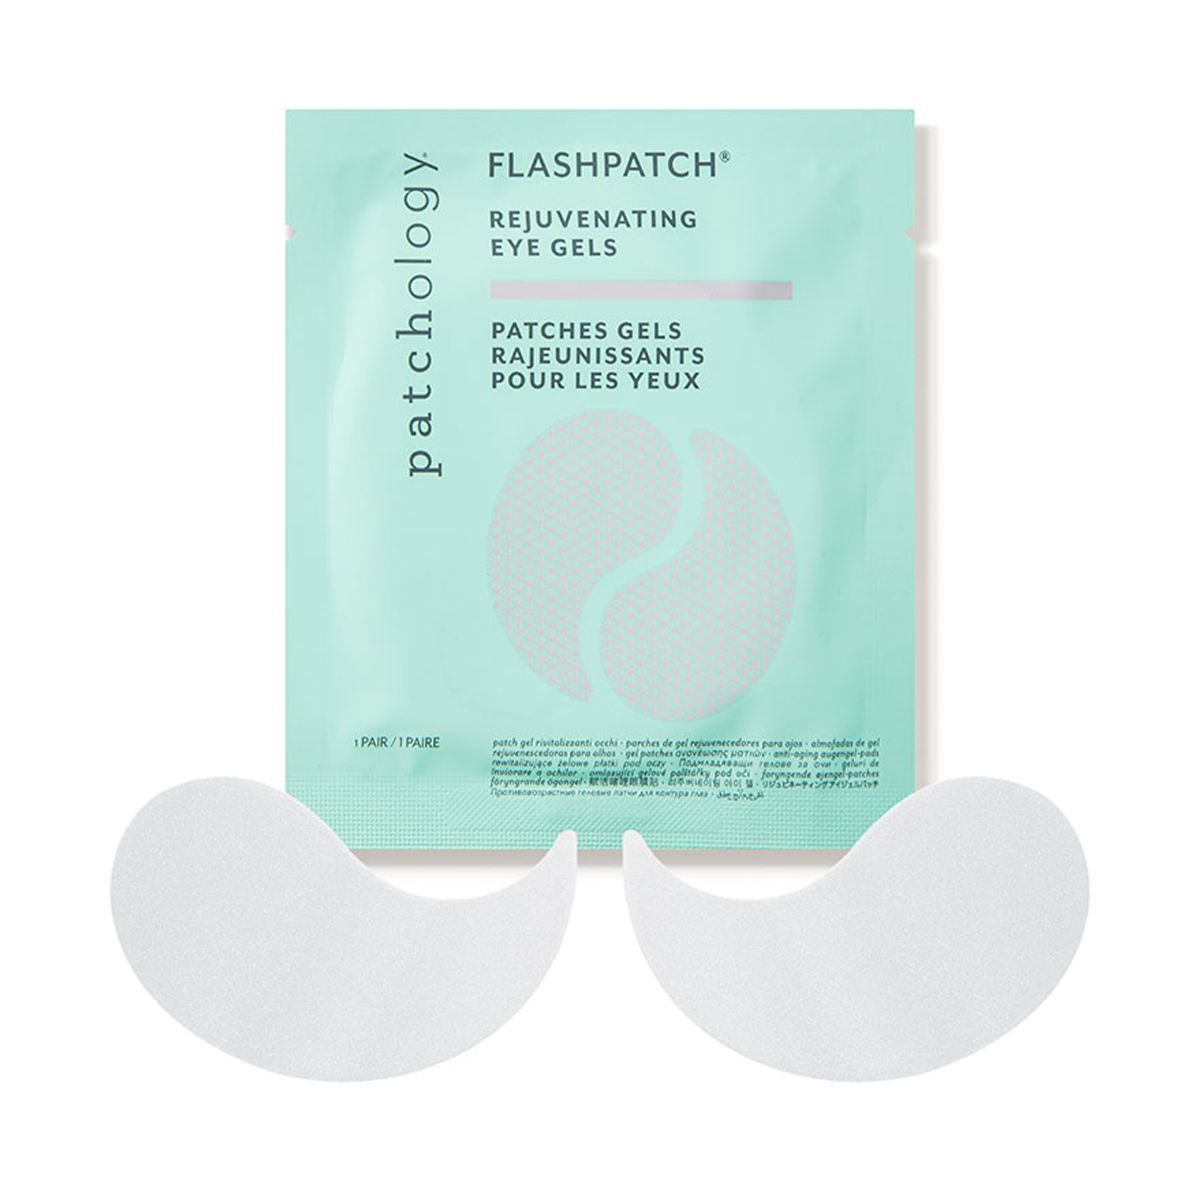 42 Life-Changing Beauty Products From Amazon, Sephora, and Dermstore - best beauty products amazon sephora dermstore 292615 1617915749449